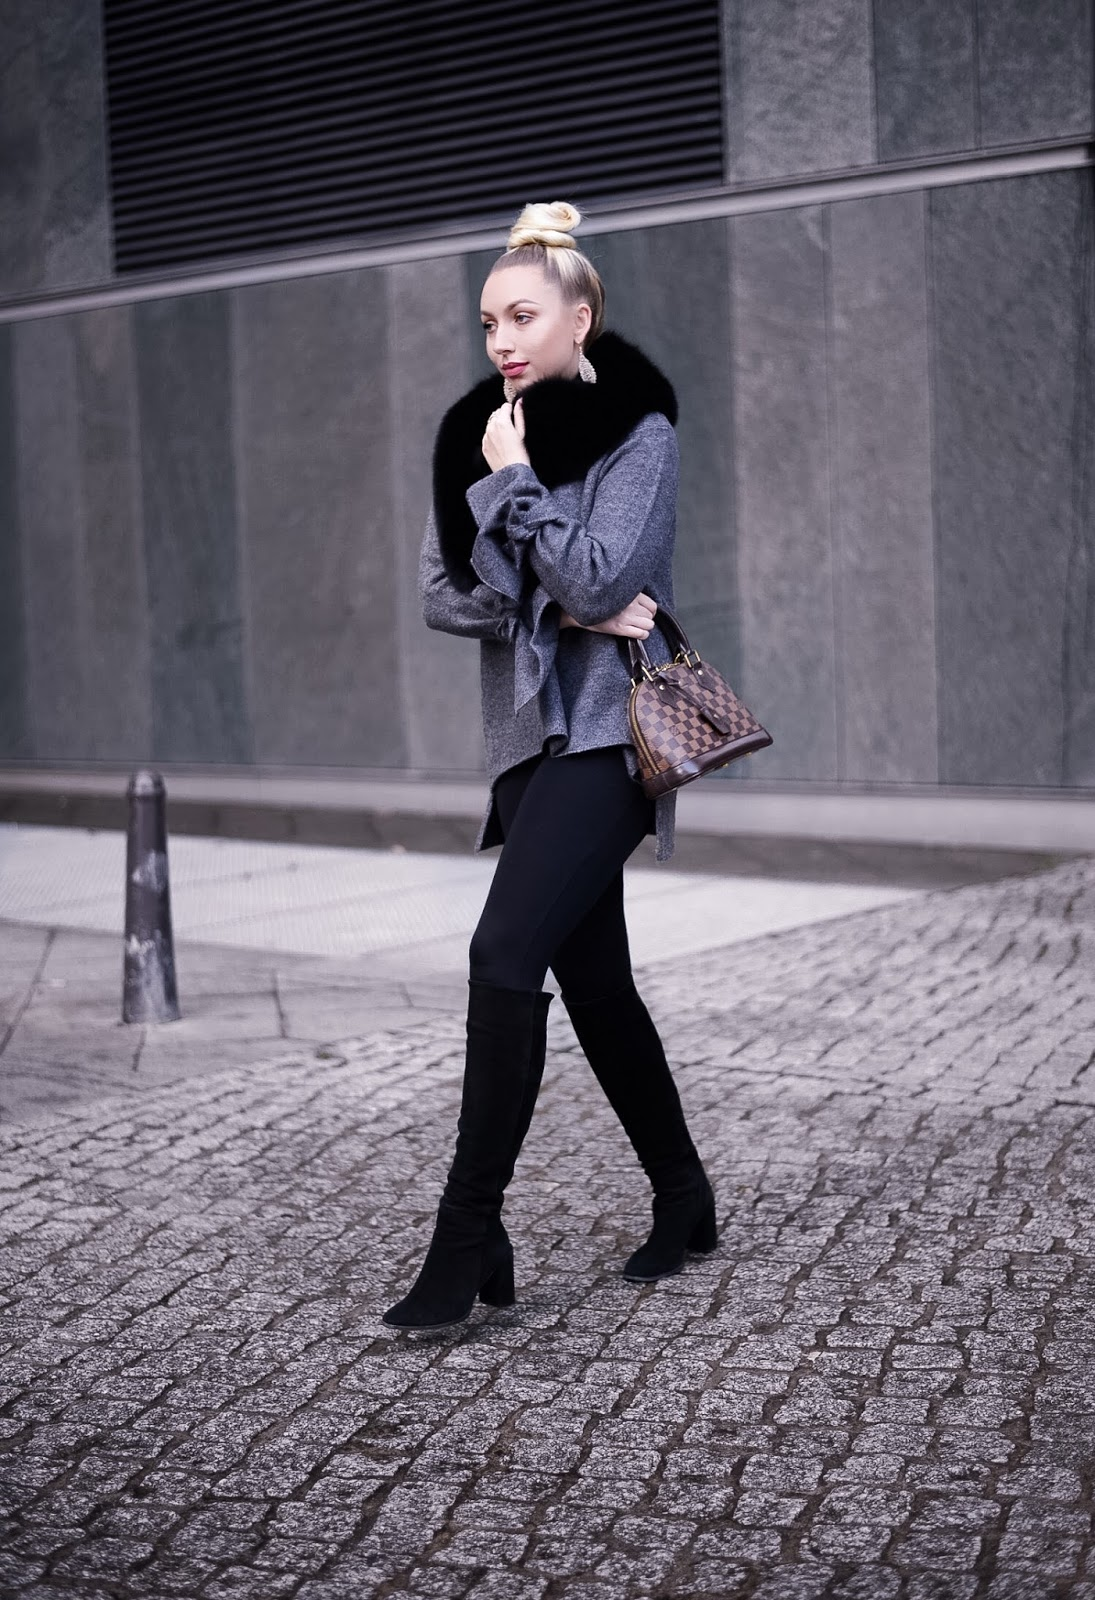 streetstyle 2016_winter must haves 2016_fashionblogger europe_knee high boots